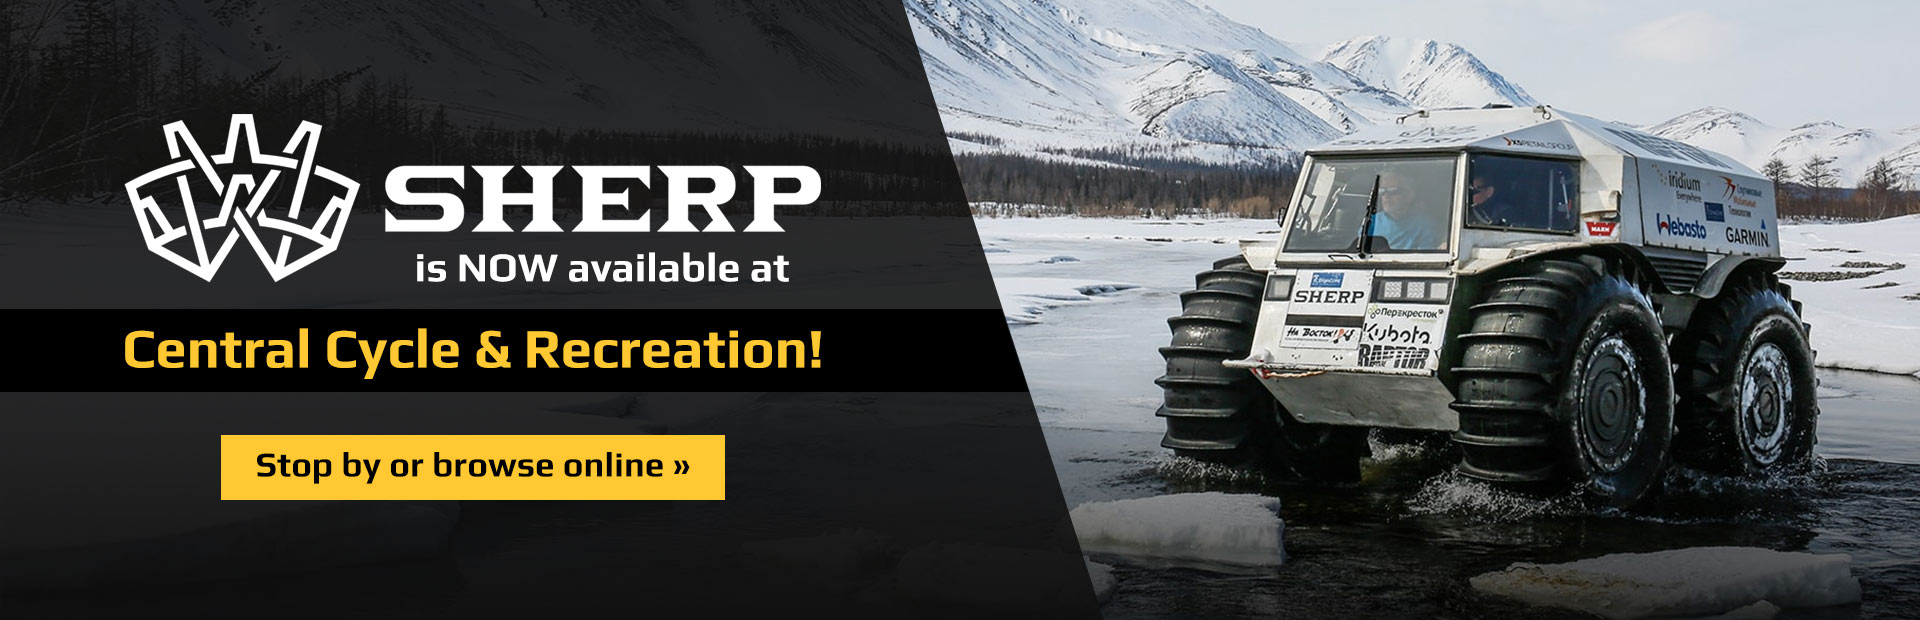 SHERP is now available at Central Cycle & Recreation!